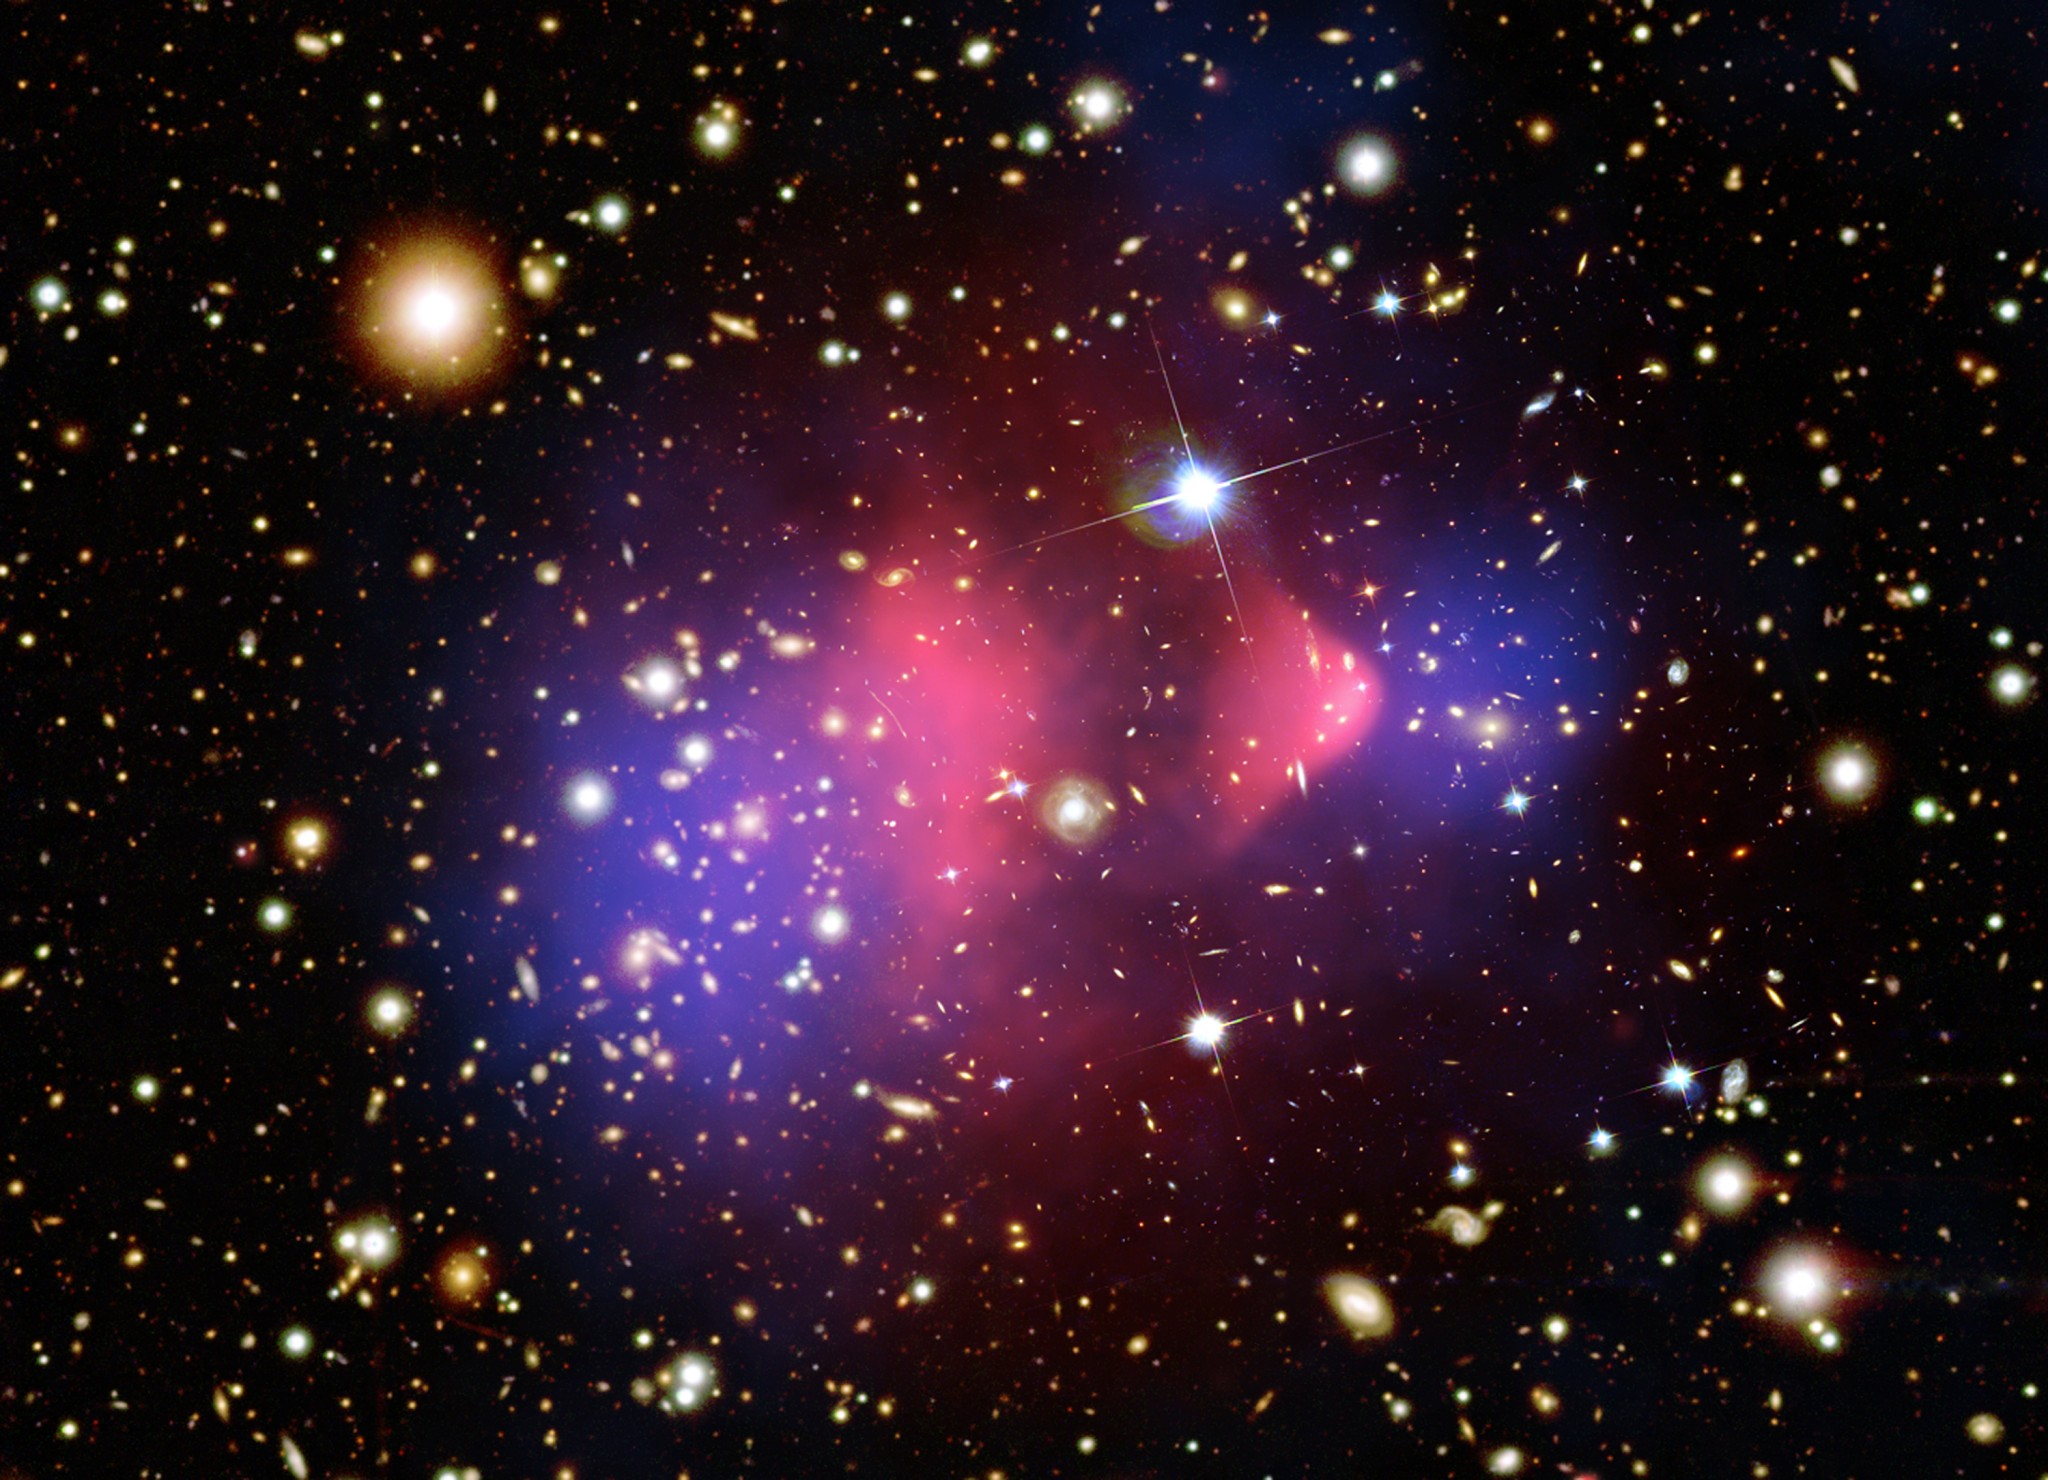 APOD: 2006 August 24 - The Matter of the Bullet Cluster